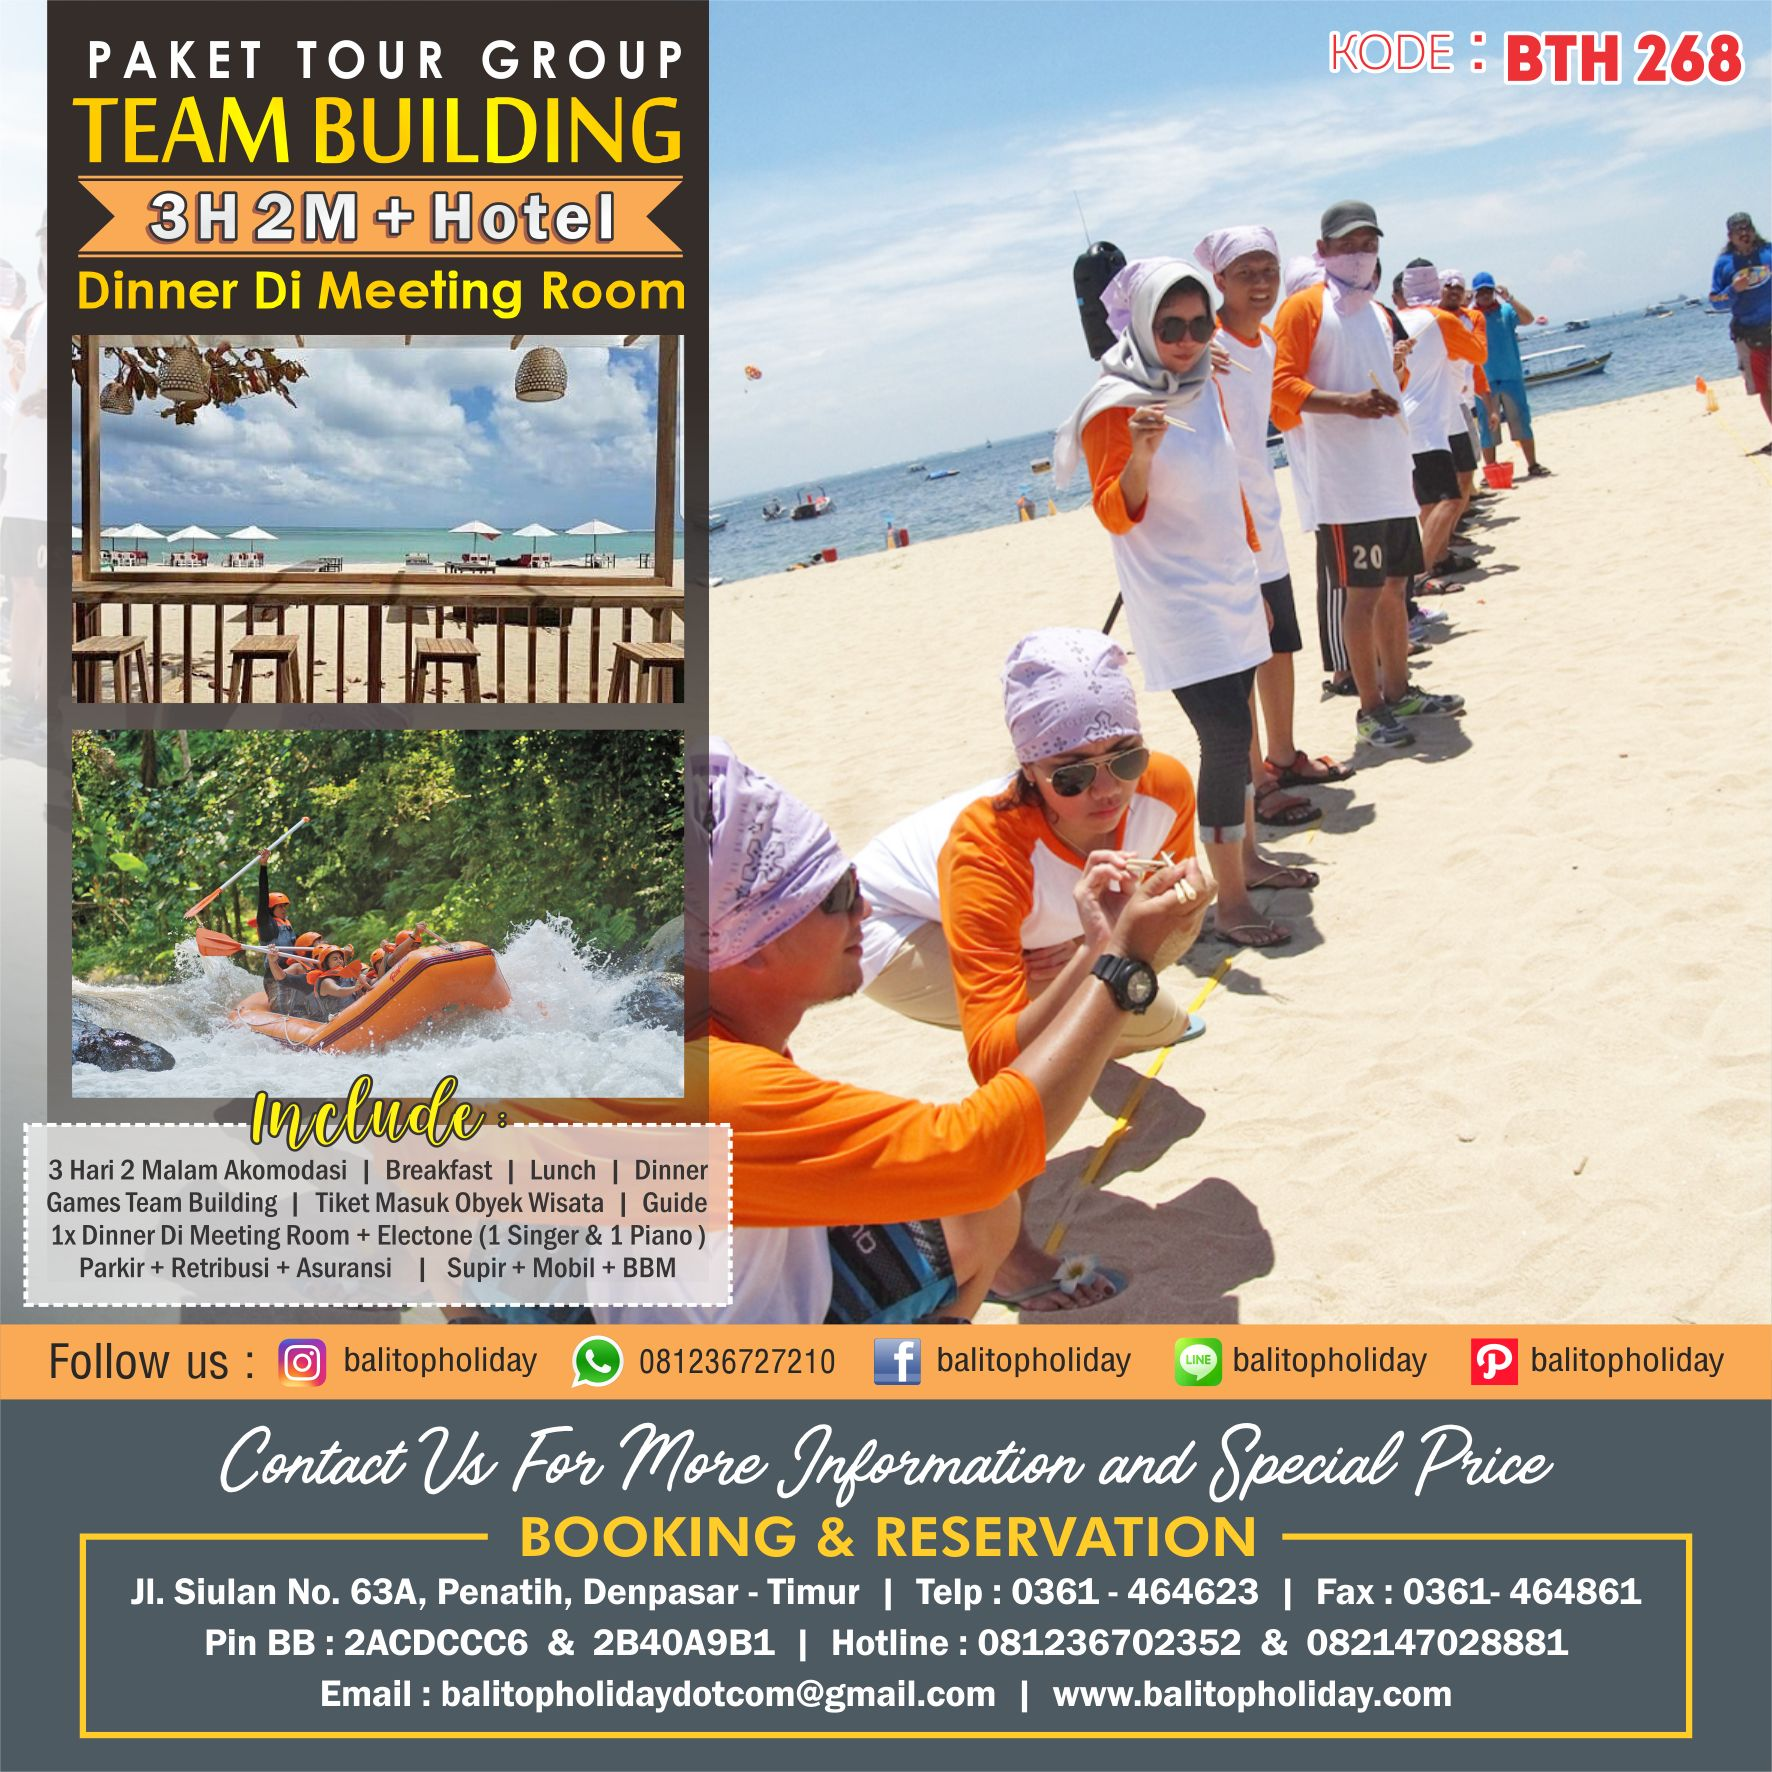 Paket Tour Group Dengan Team Building 3 Hari 2 Malam + Hotel Dengan Dinner Di Meeting Room